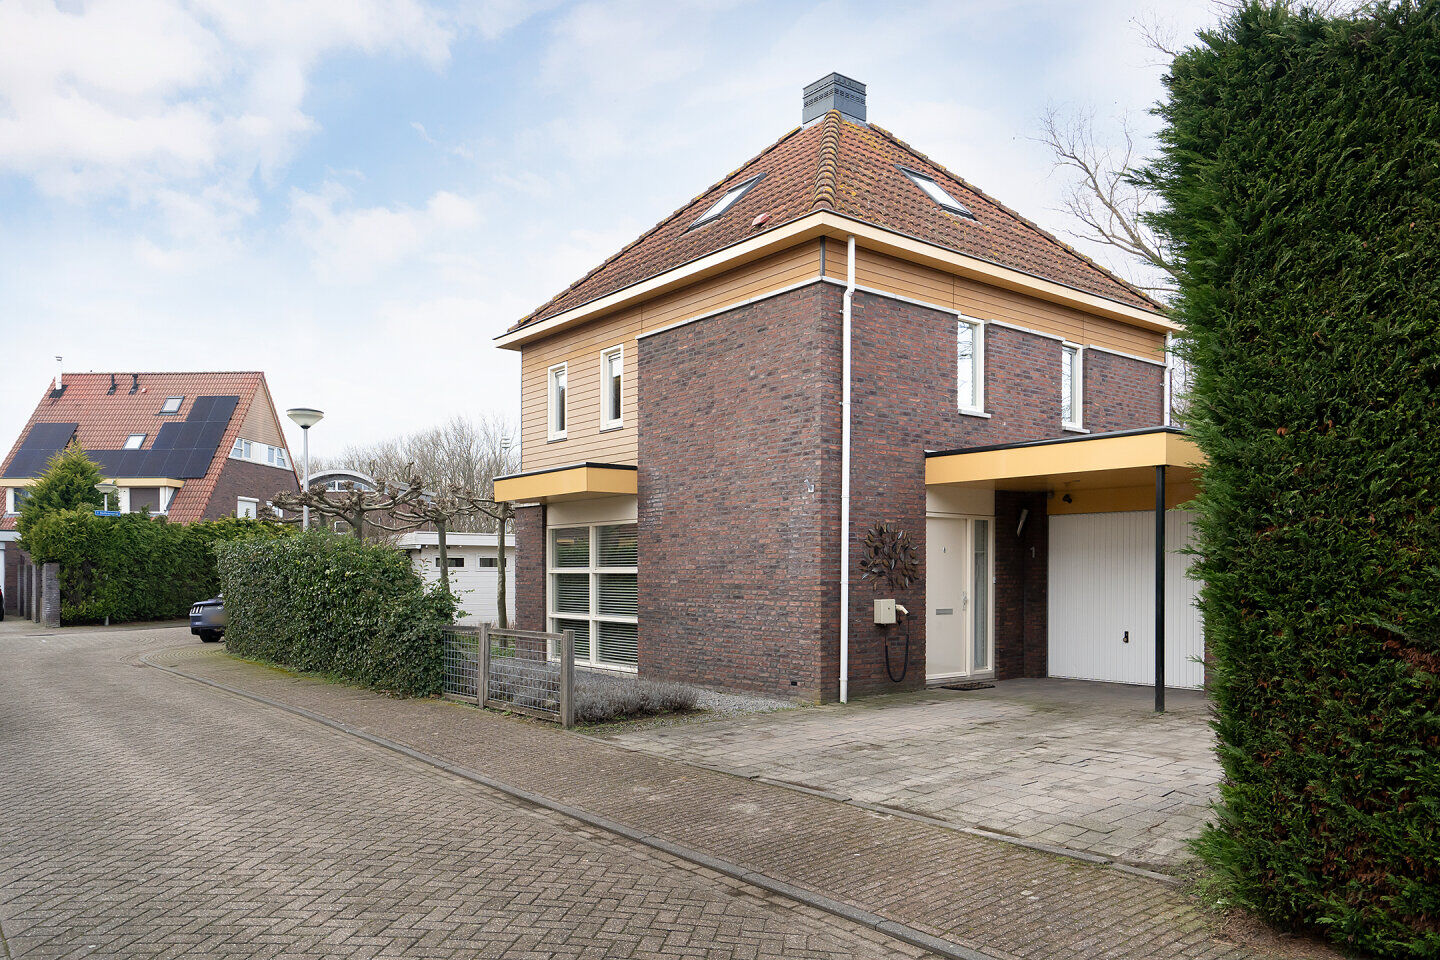 37157-jan_de_preestraat_1-steenbergen-2840519295